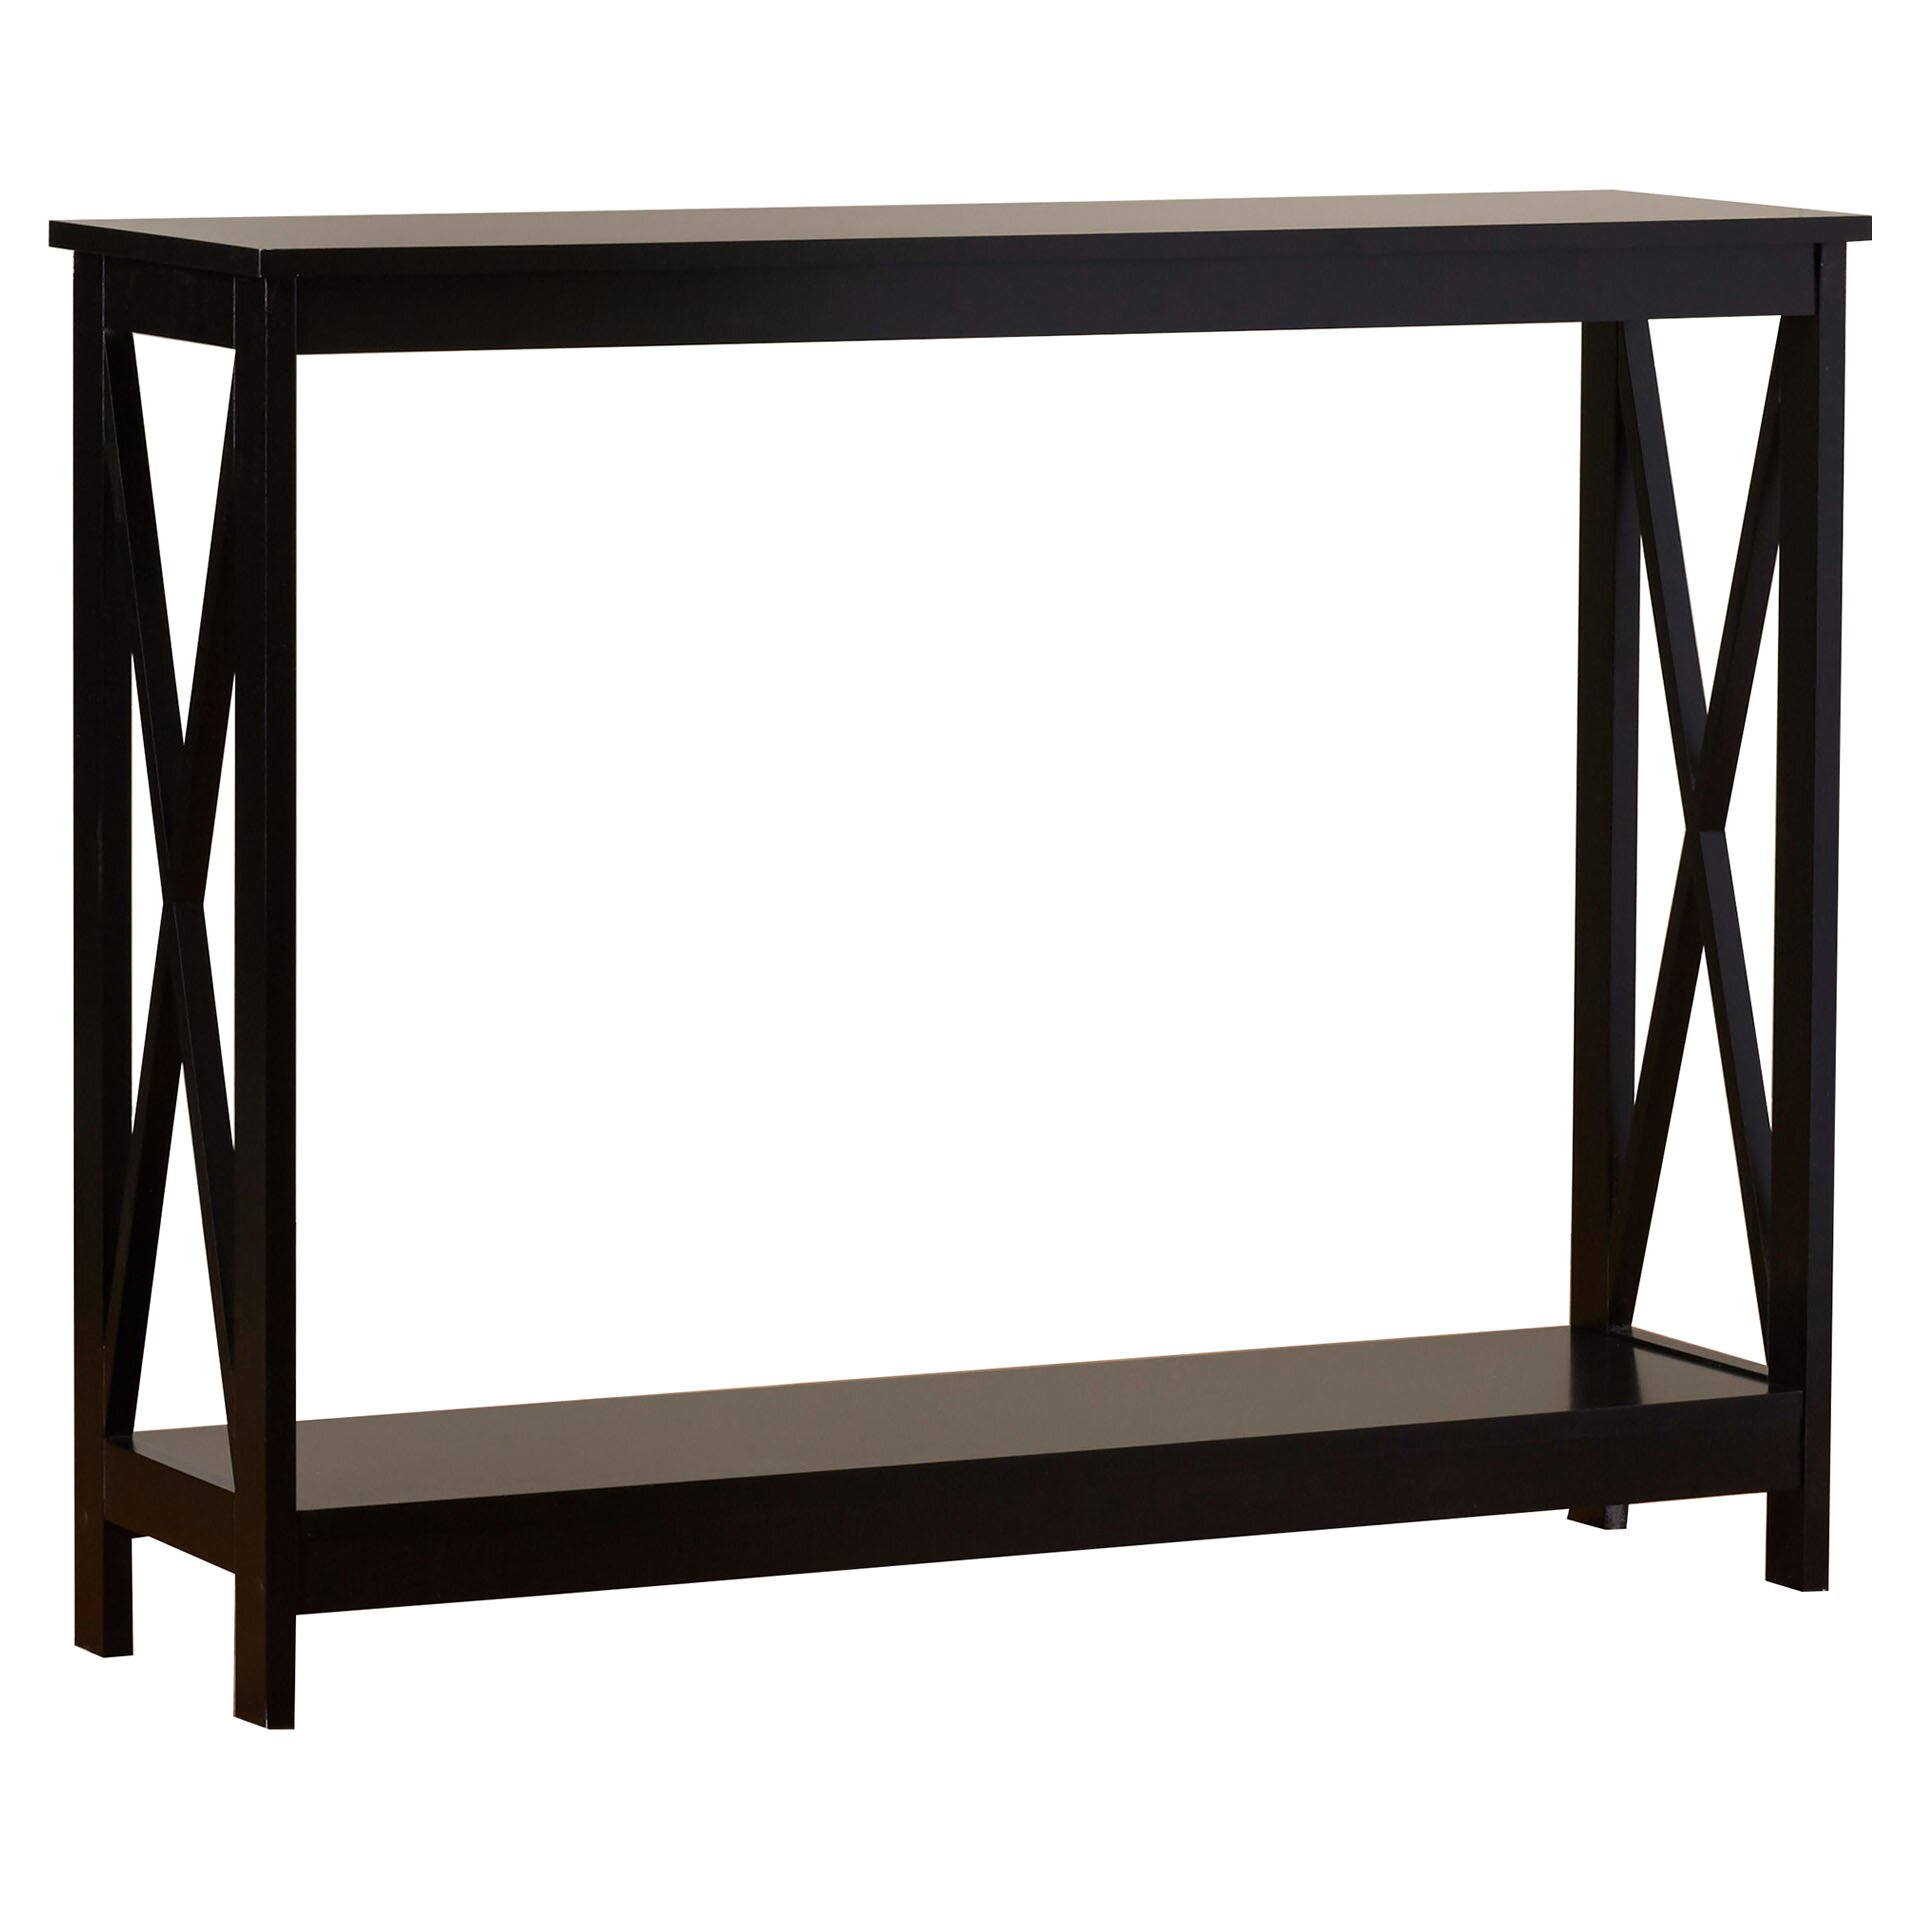 Breakwater bay washington console table reviews wayfair